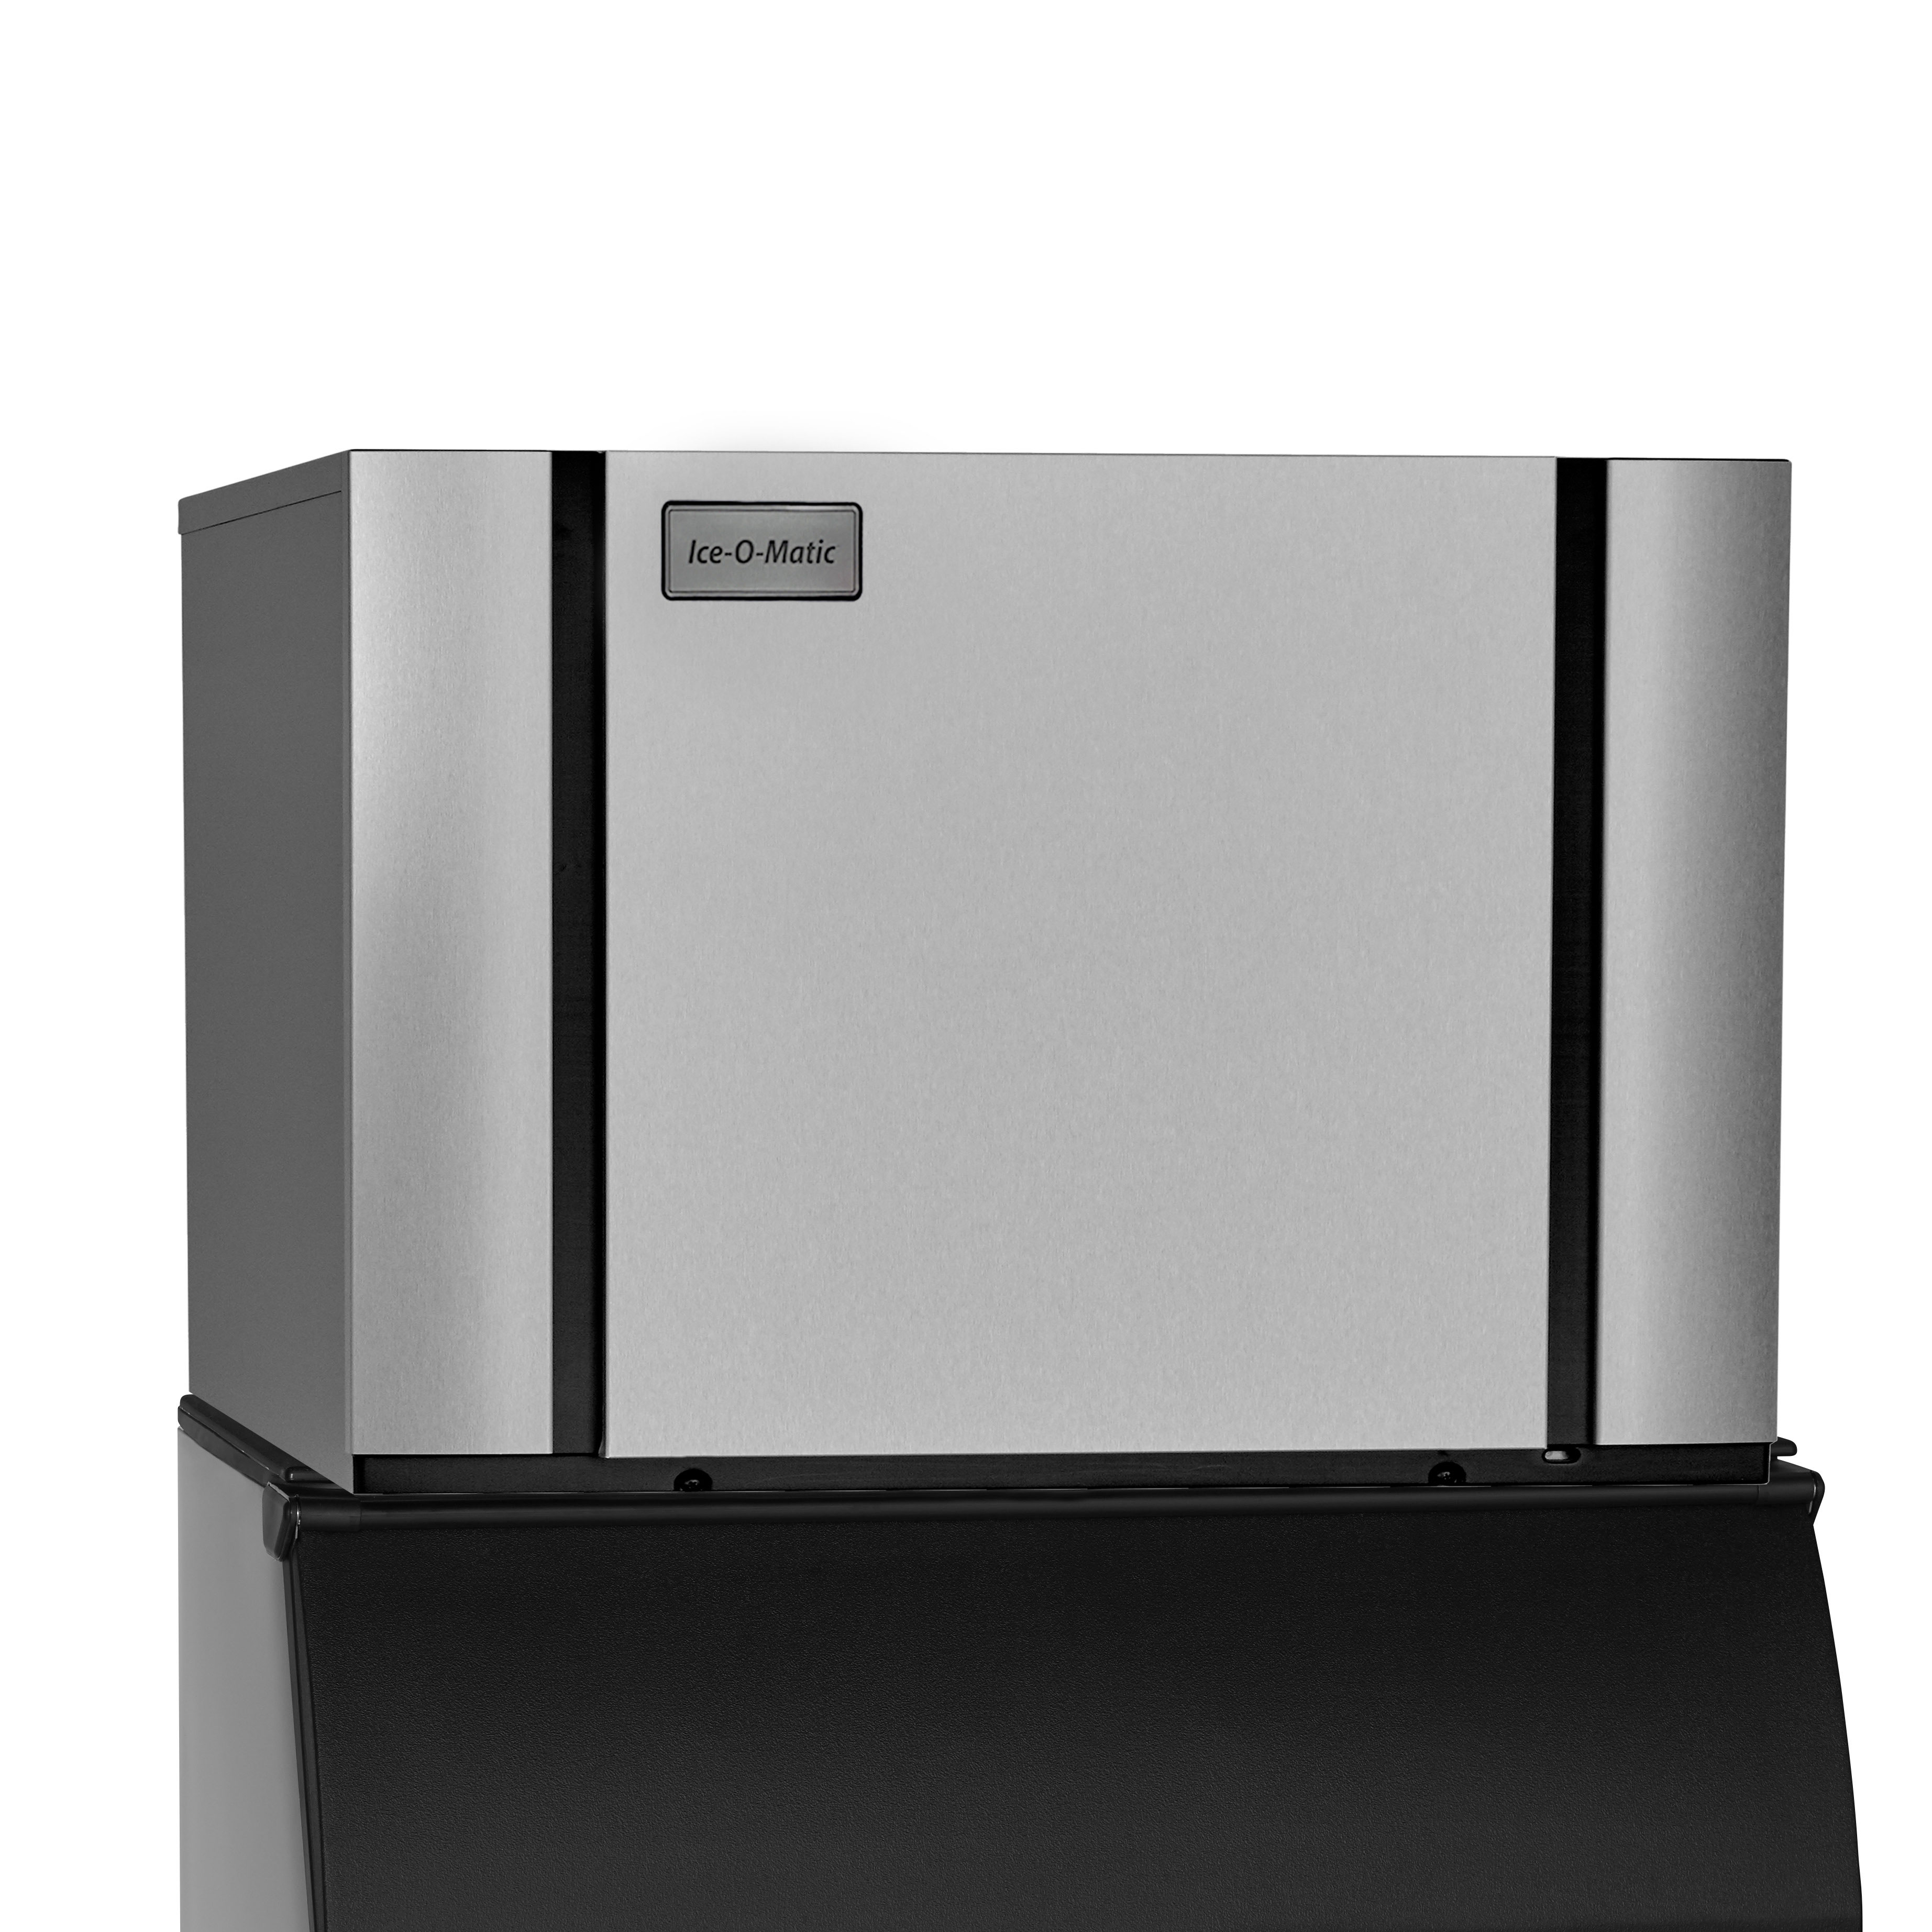 Ice-O-Matic CIM2047FW ice maker, cube-style